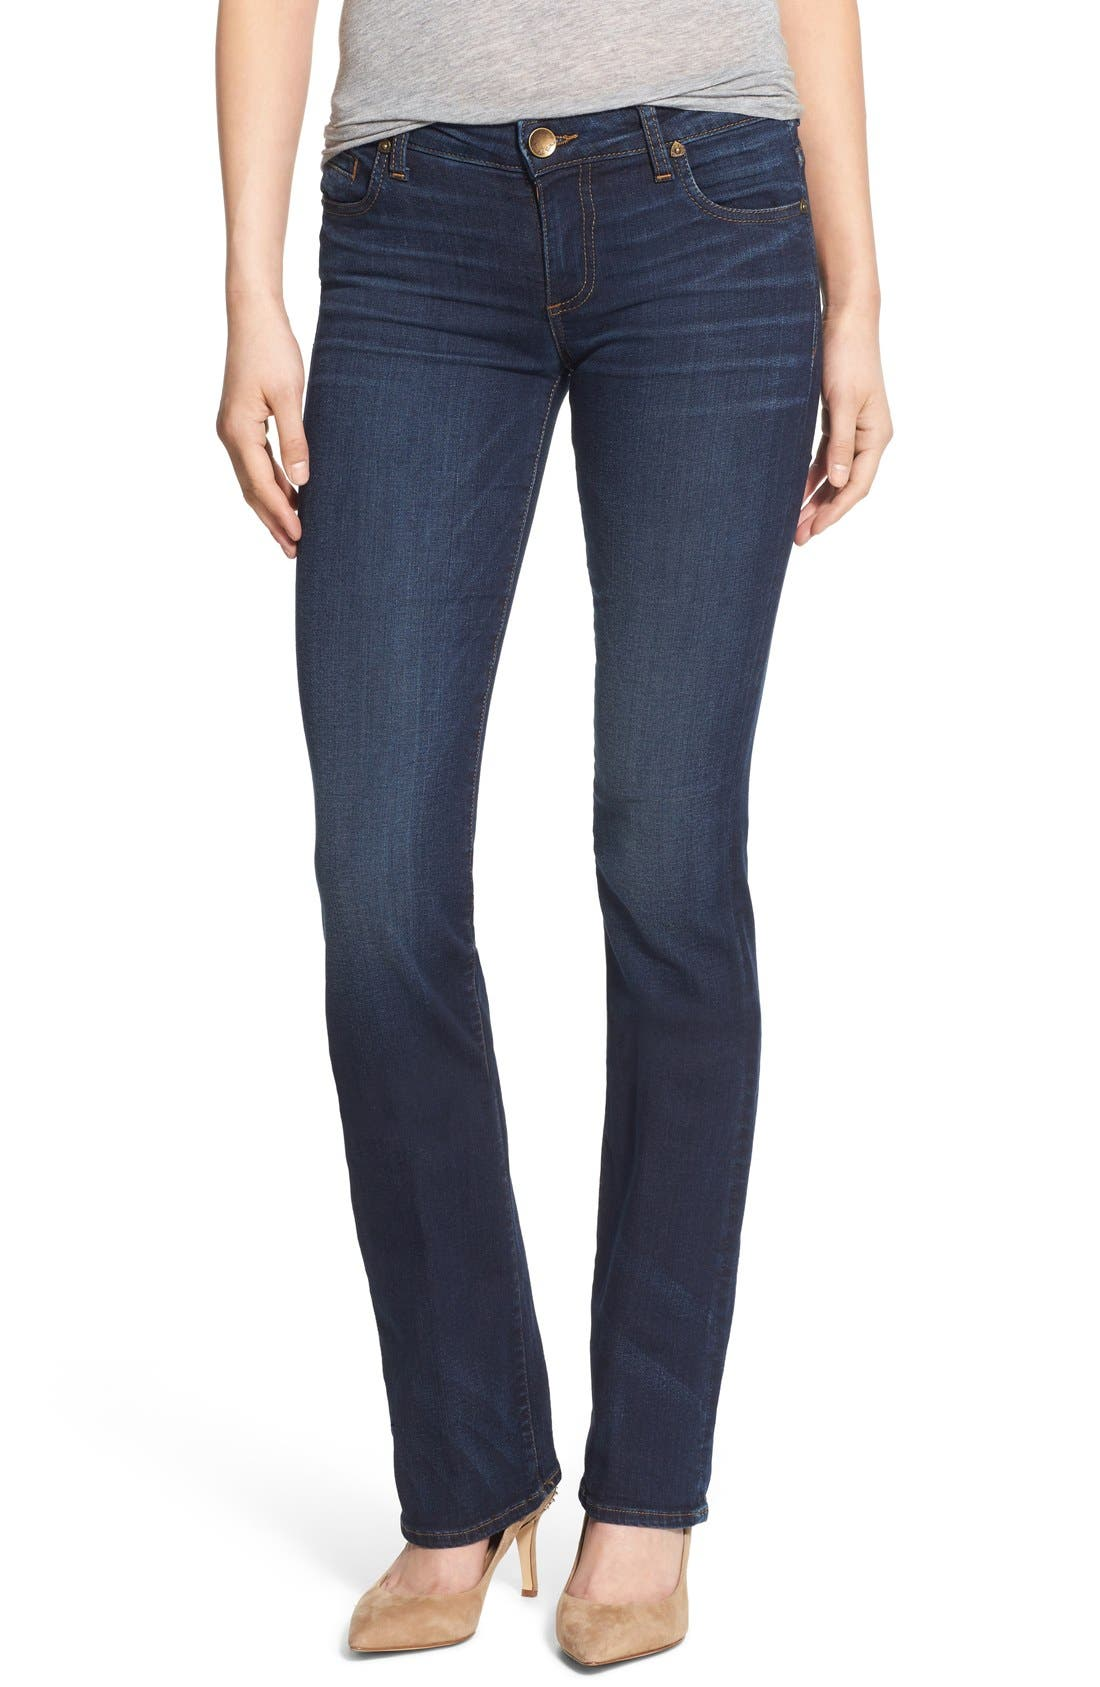 'Natalie' Stretch Bootleg Jeans,                         Main,                         color,